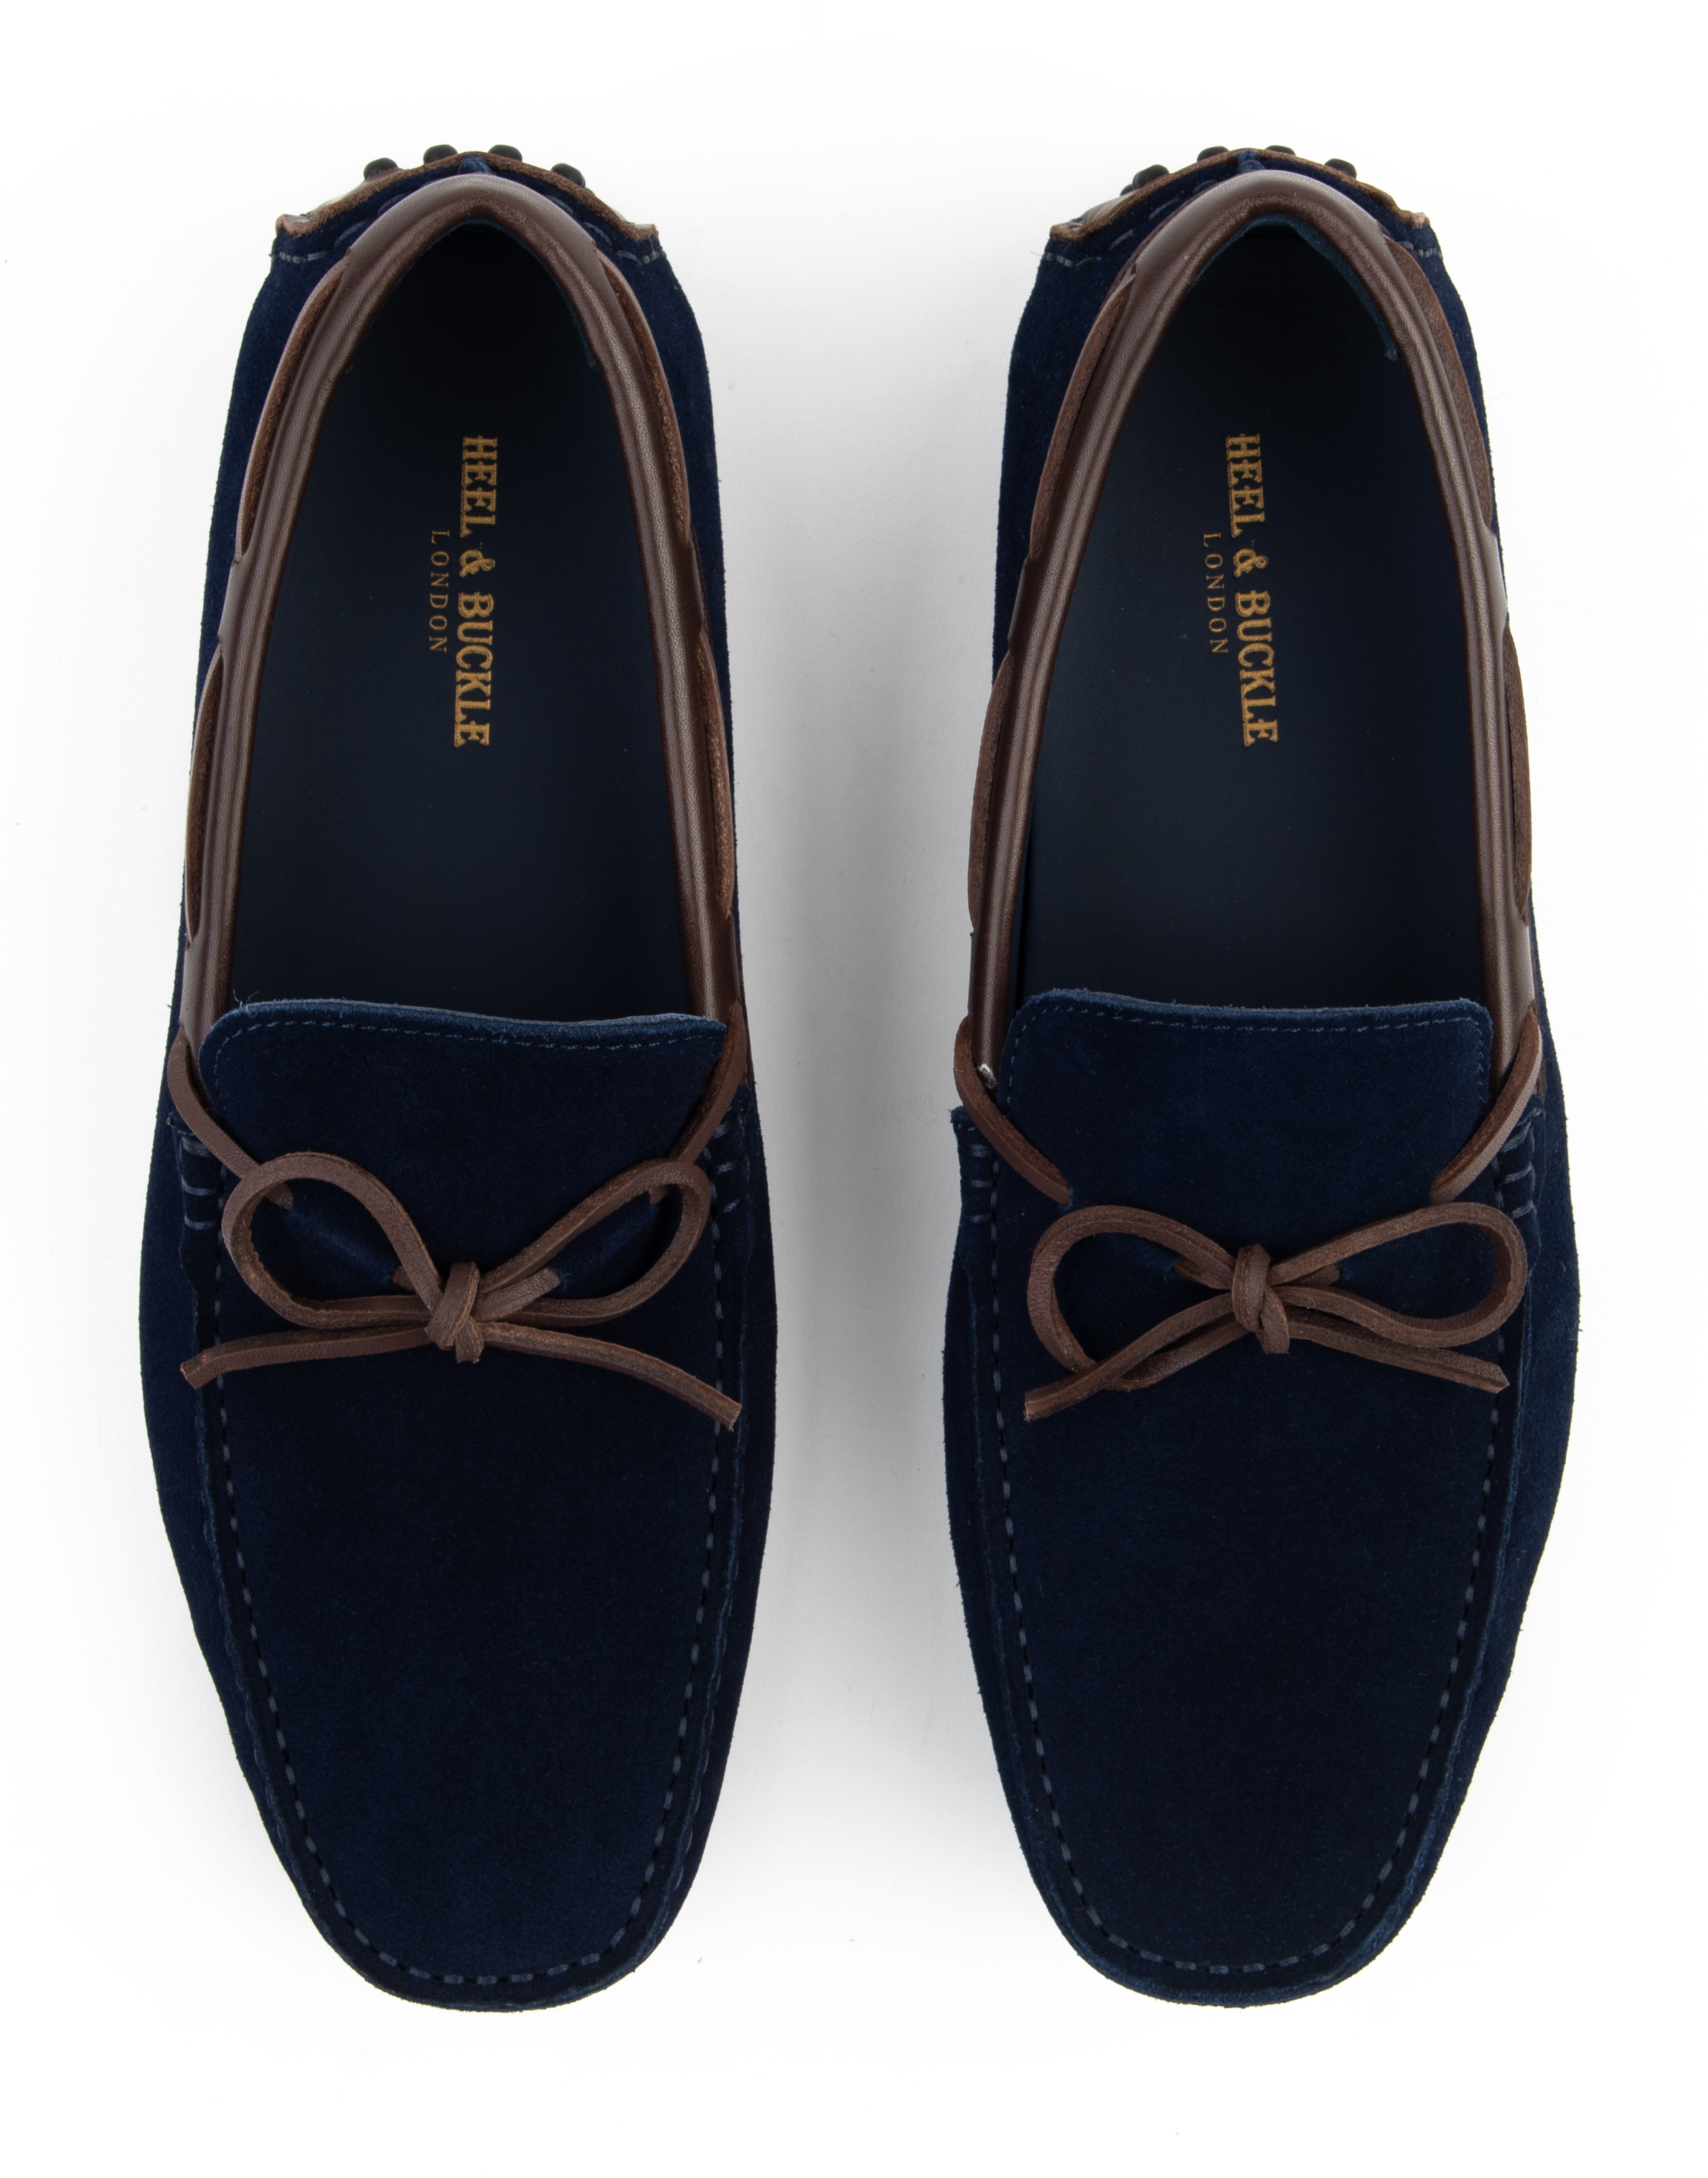 Heel _ Buckle London -Shoes-HF101-1-Drivers-Dark Blue suede with tan tassel-4